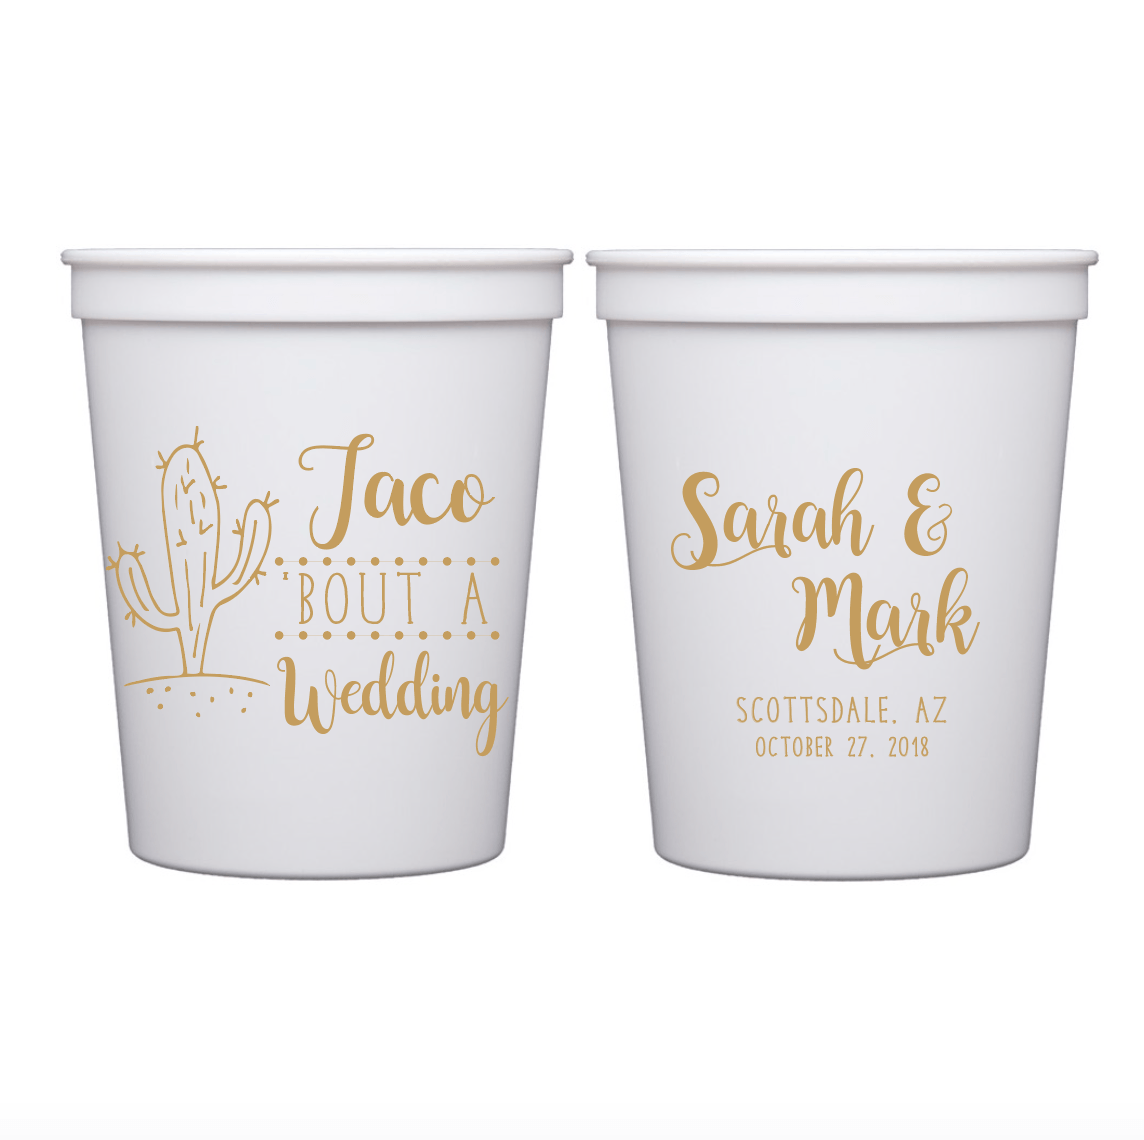 Stadium Cups - Taco About A Wedding Personalized Stadium Cups